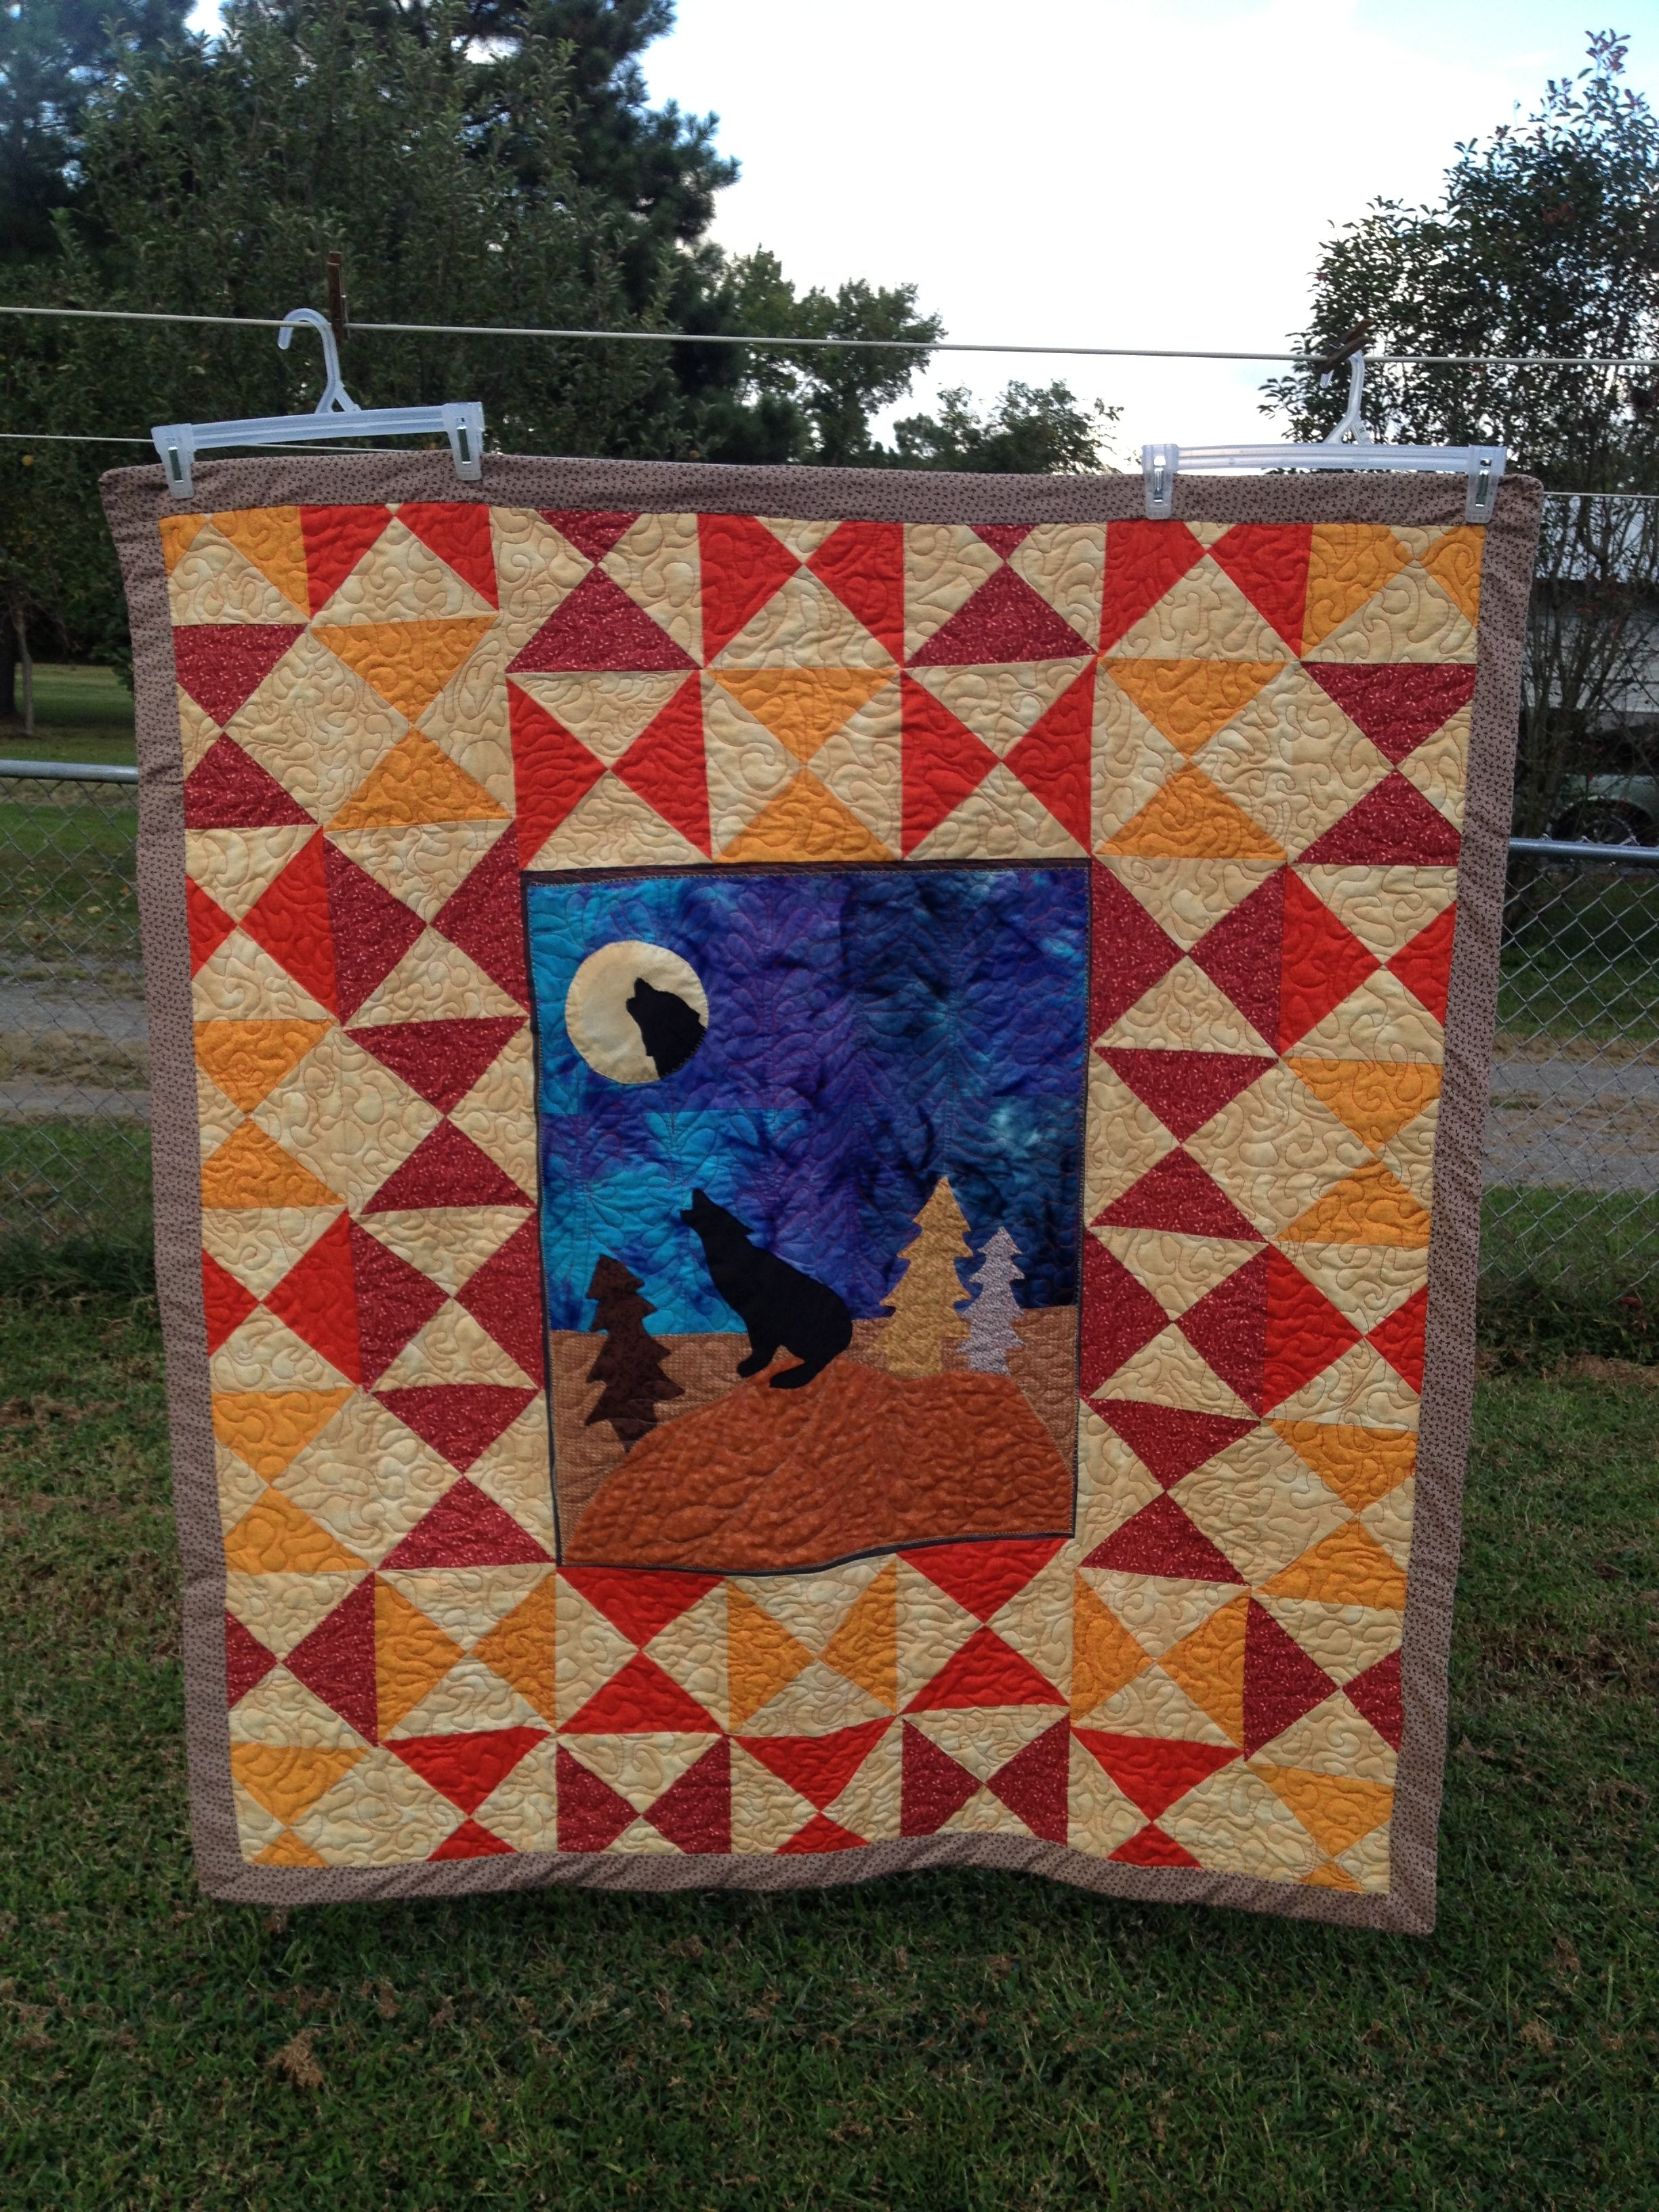 Pin by Pat Arzadon on Quilting Quilts, Blanket